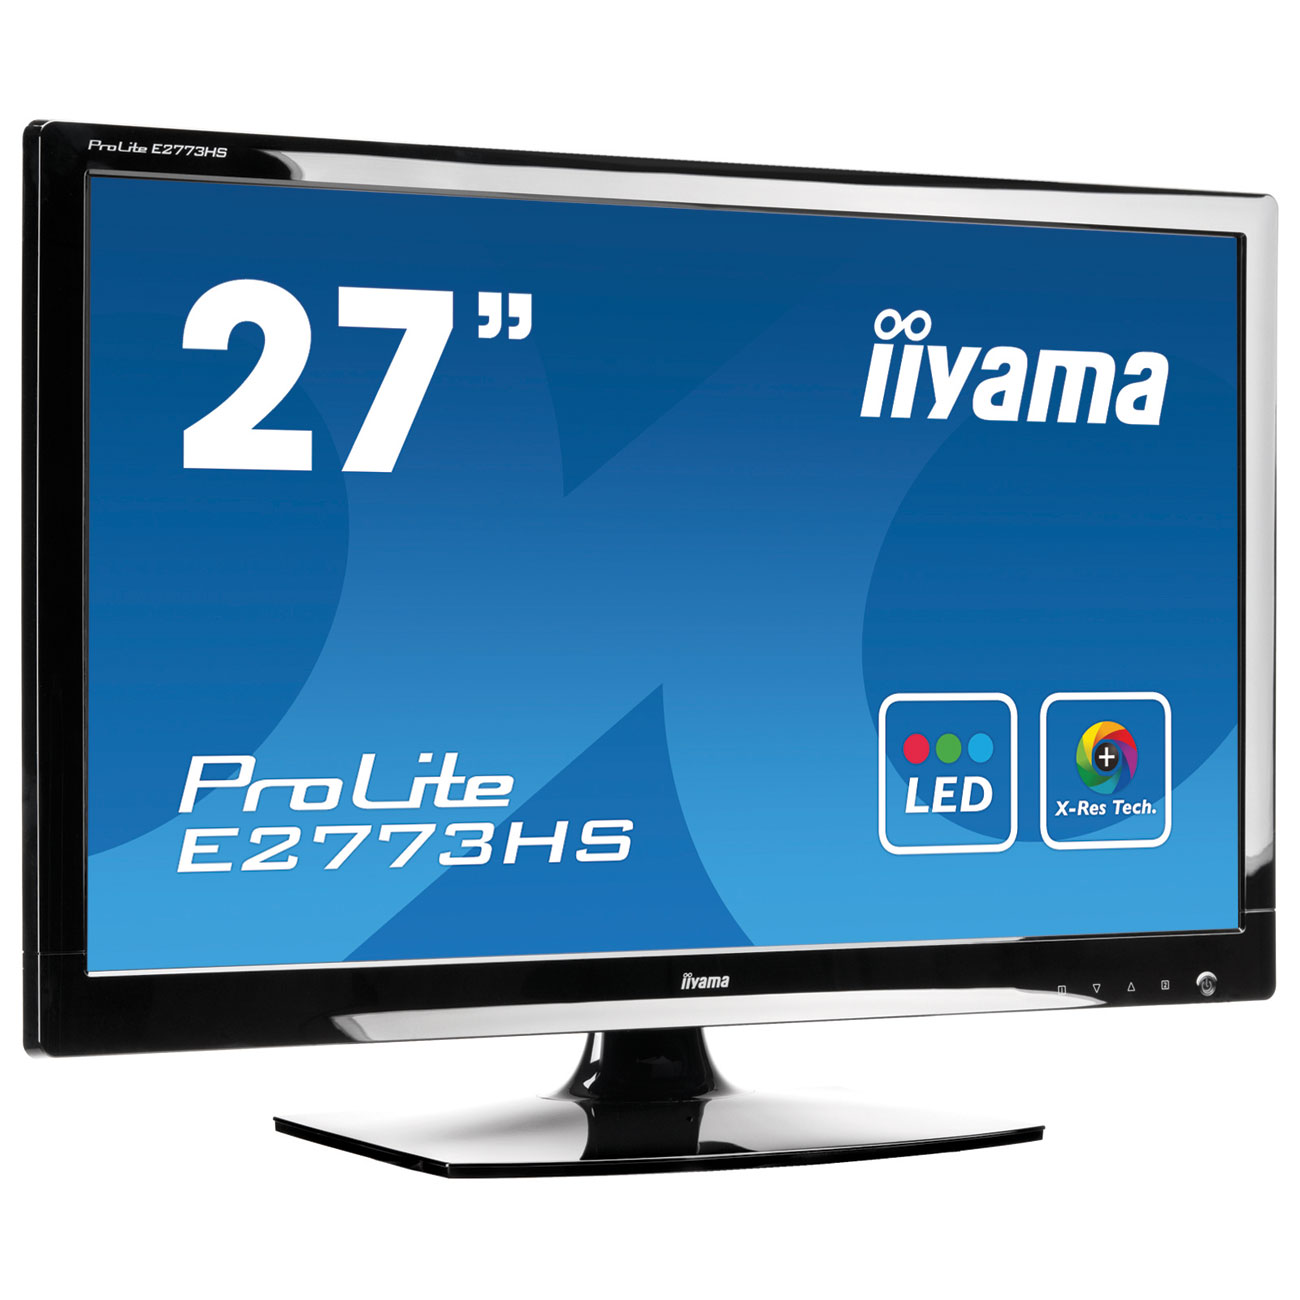 iiyama 27 led prolite e2773hs ecran pc iiyama sur. Black Bedroom Furniture Sets. Home Design Ideas